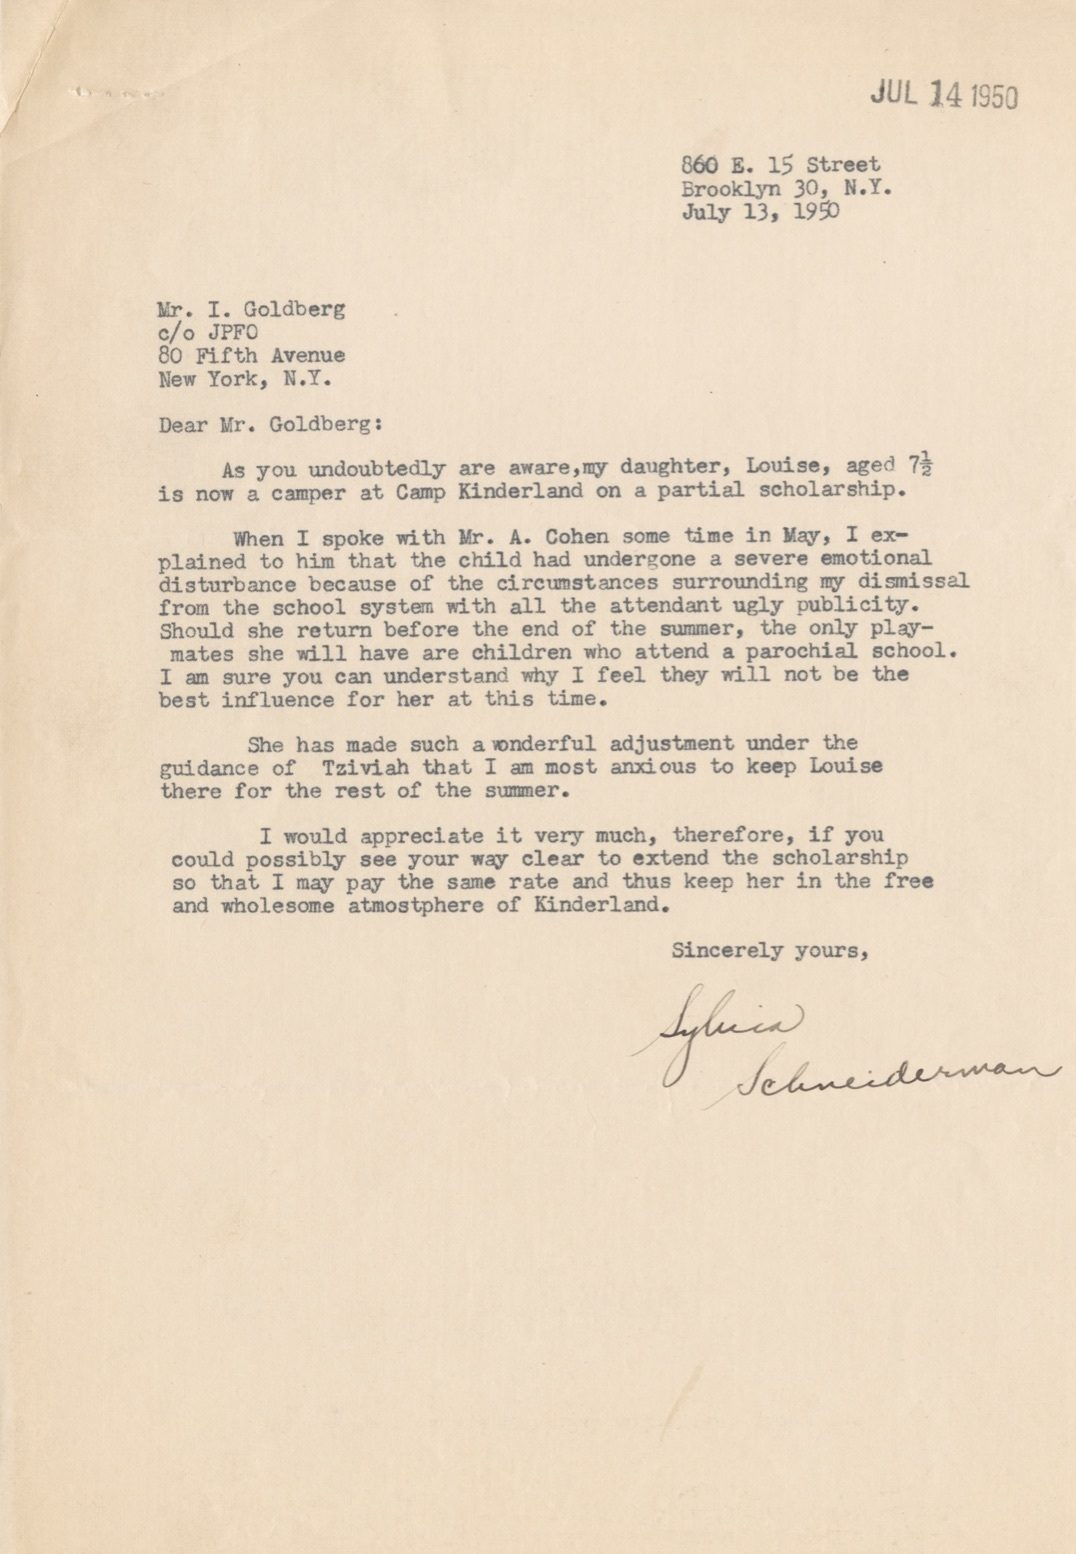 "<p><em>1950 letter from Sylvia Schneiderman, a Jewish American mother and New York City public school teacher fired for her Communist Party affiliation, to Itche Goldberg, legendary Yiddish writer/editor and the then- director of Camp Kinderland. Source: </em><em>International Workers Order (<span class=""caps"">IWO</span>) Records #5276. Kheel Center for Labor-Management Documentation and Archives, Cornell University Library.&nbsp;<a href=""https://digital.library.cornell.edu/catalog/ss:21072533"">https://digital.library.cornell.edu/catalog/ss:210&#8230;</a></em></p>"